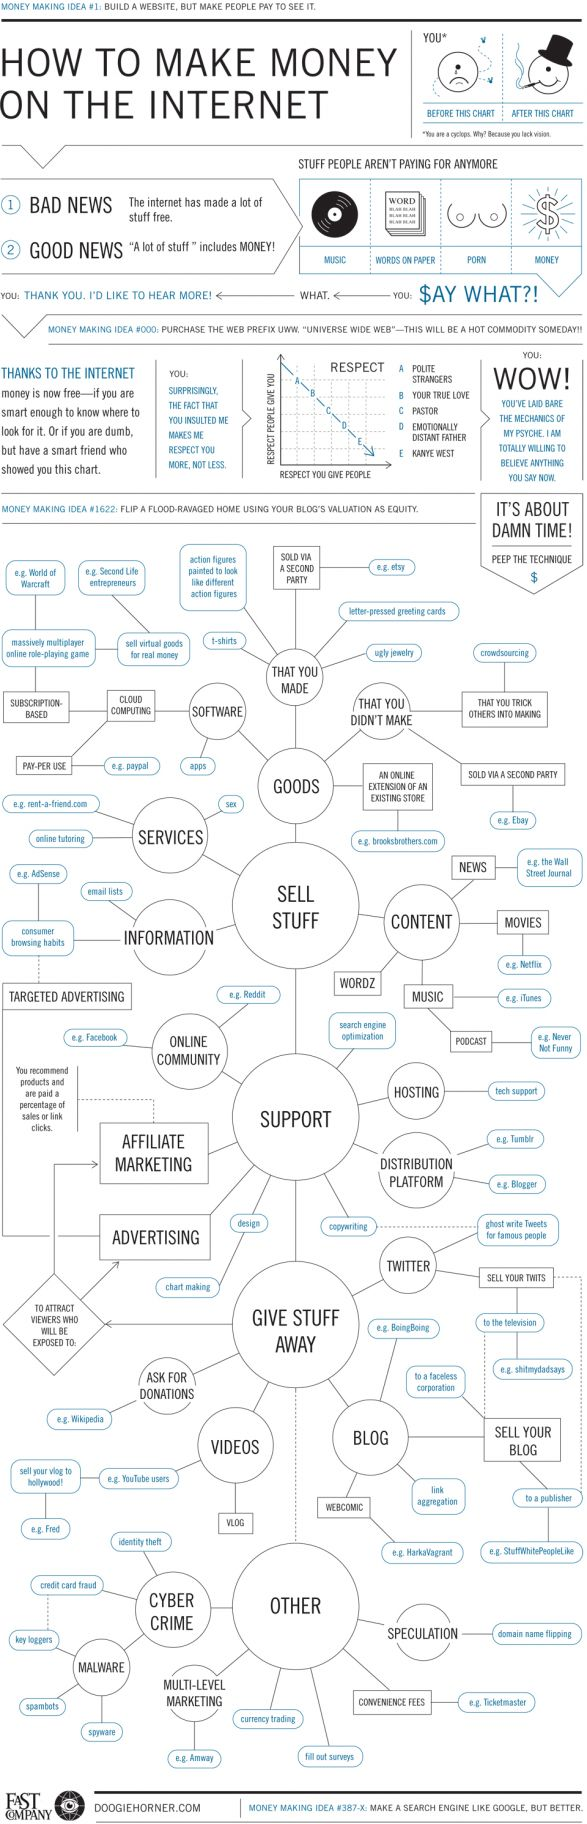 design flow chart online image collections chart example ideas 25 unique fluxograma online ideas on pinterest - Design Flow Chart Online